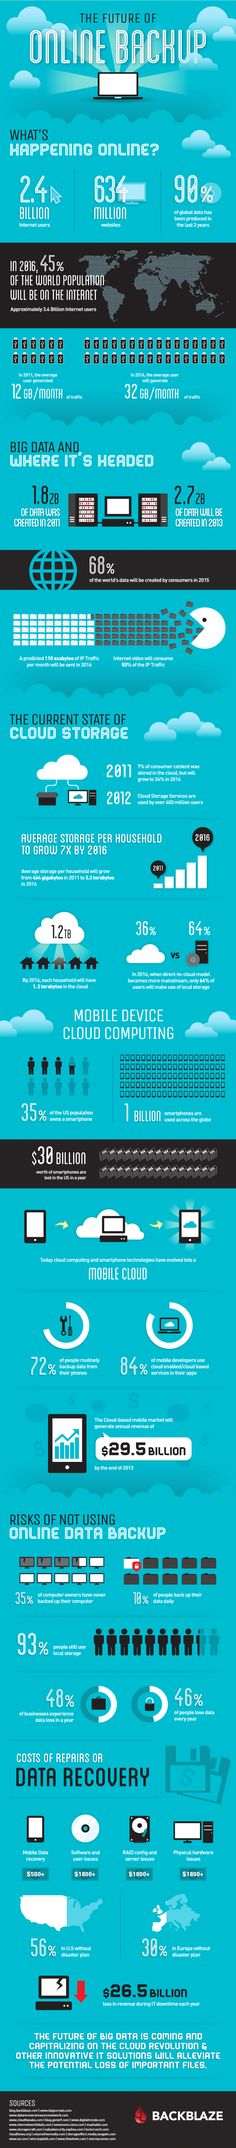 future of online backup #technology